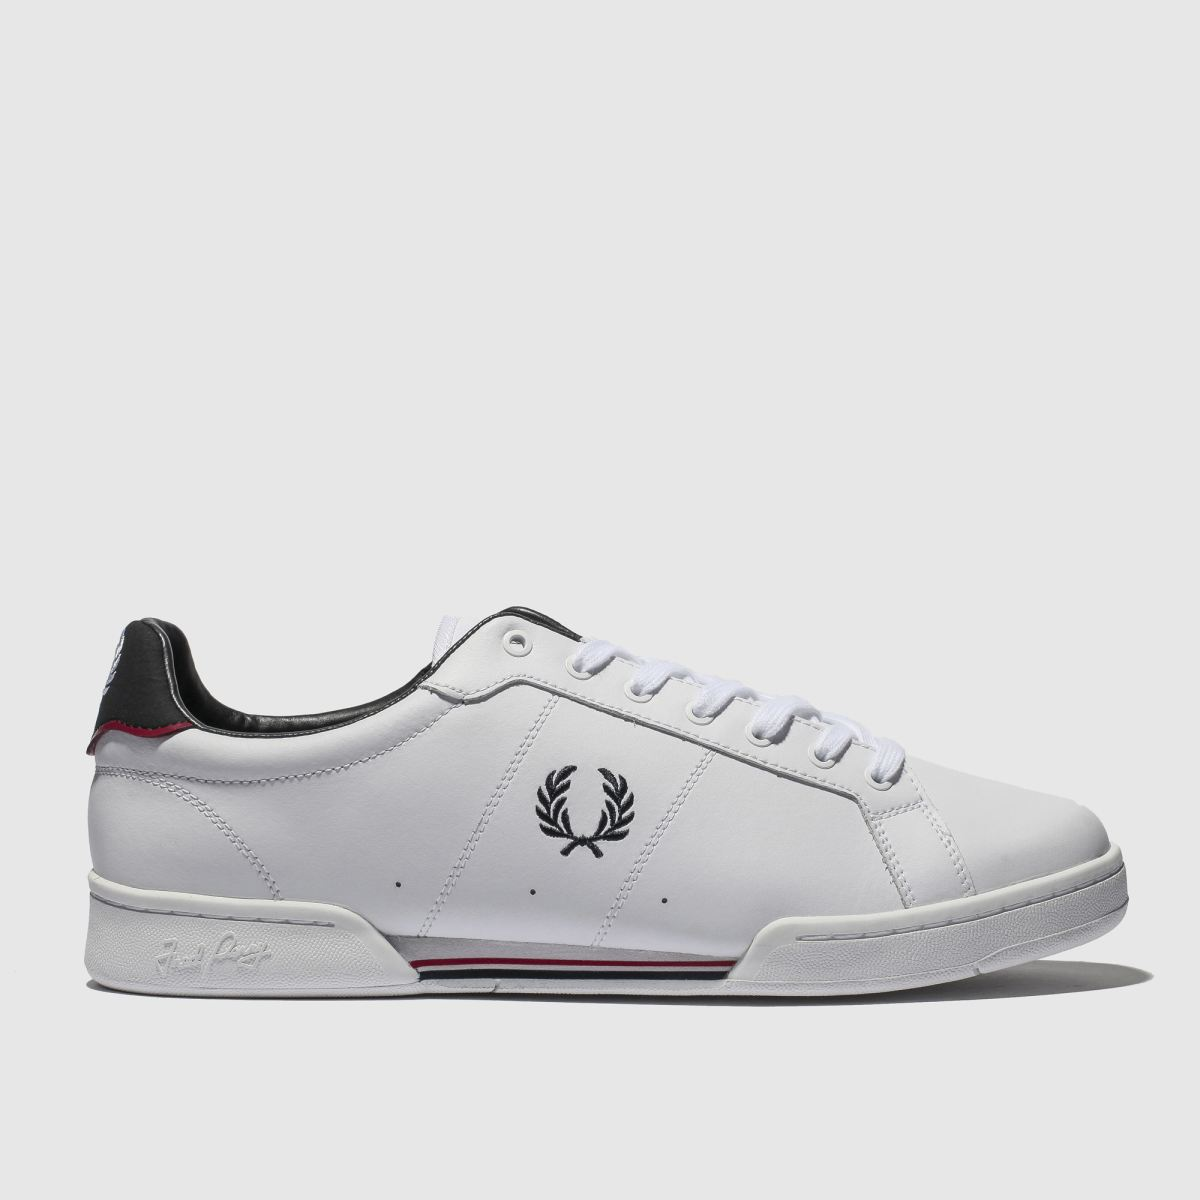 Fred Perry White & Navy B7222 Leather Trainers